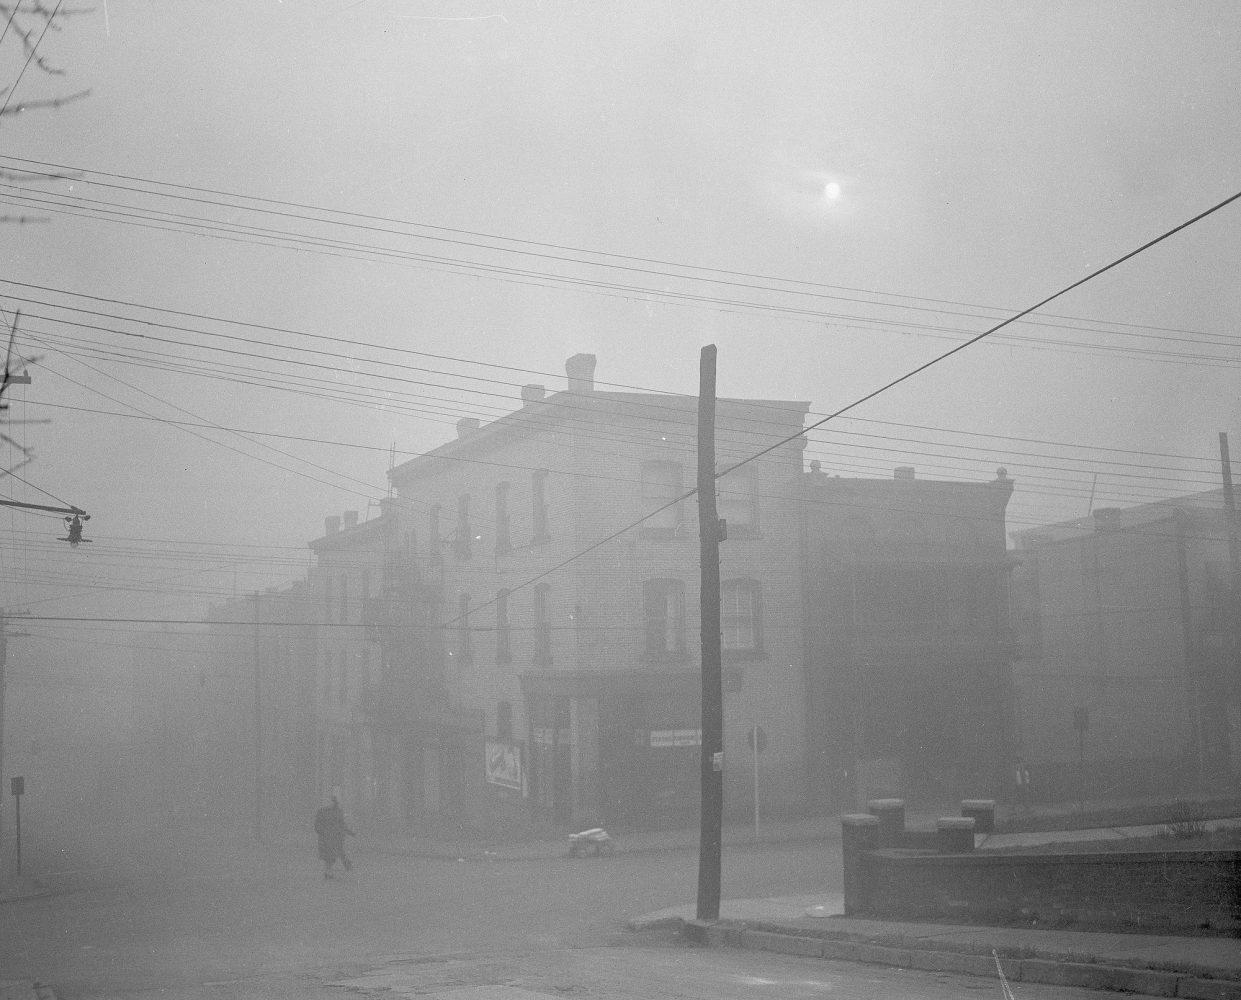 Low-hanging pollution nearly blocks out the sun in Donora, PA, on Oct. 30, 1948.